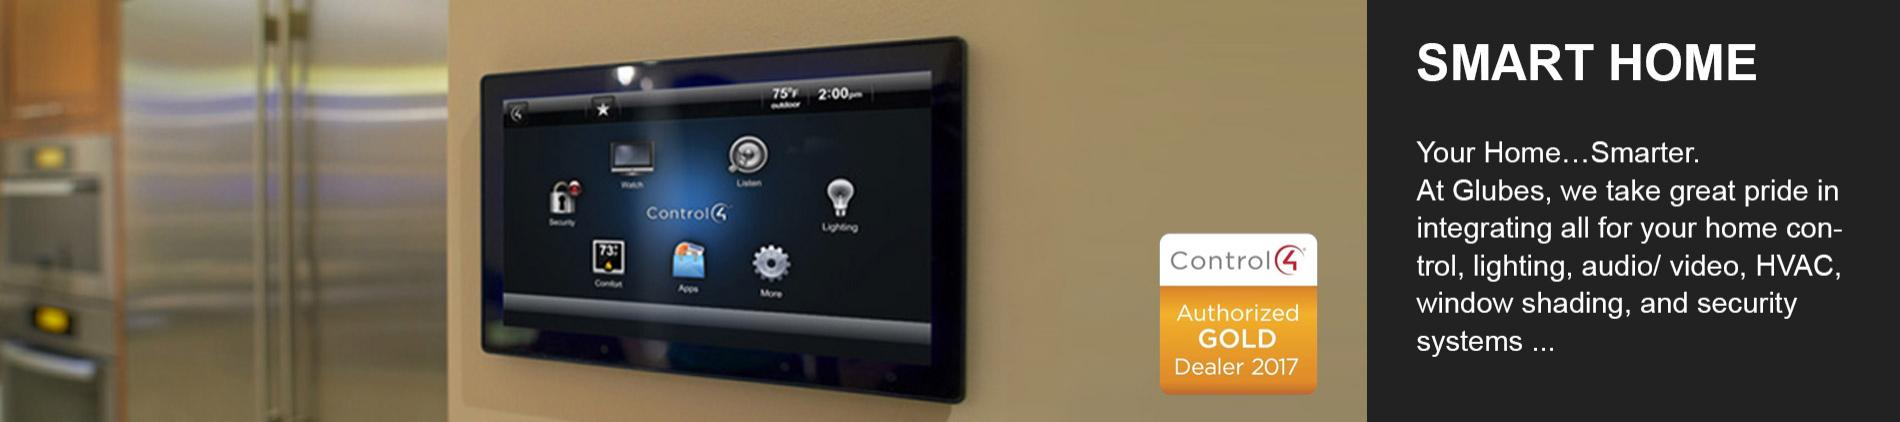 smart home,home automation,control 4